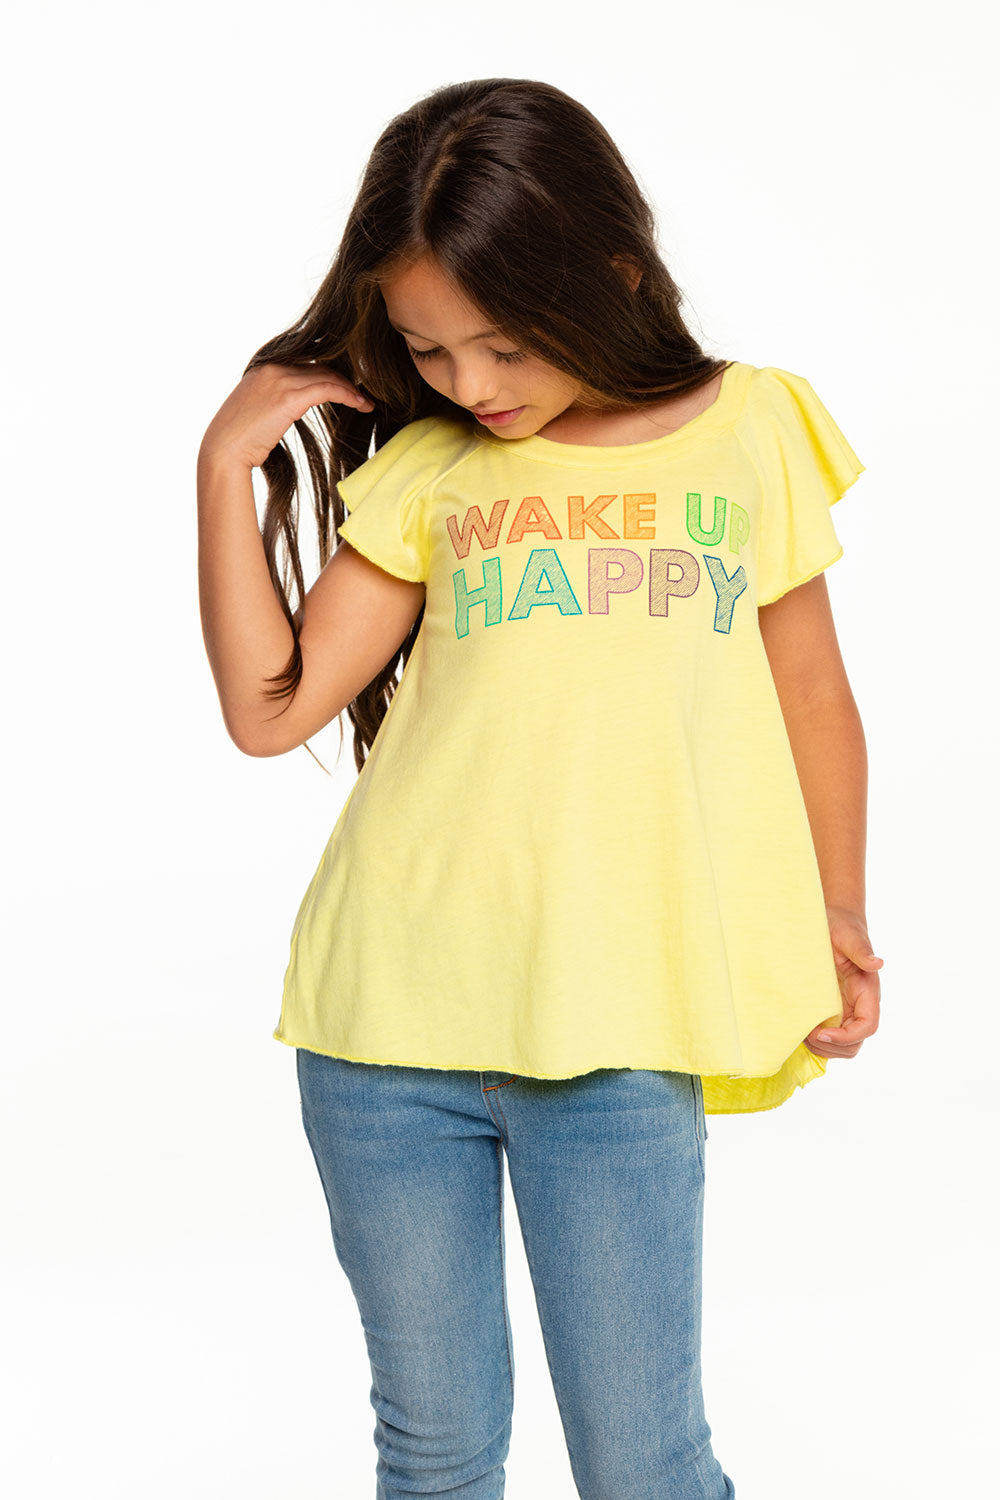 Wake Up Happy GIRLS chaserbrand4.myshopify.com